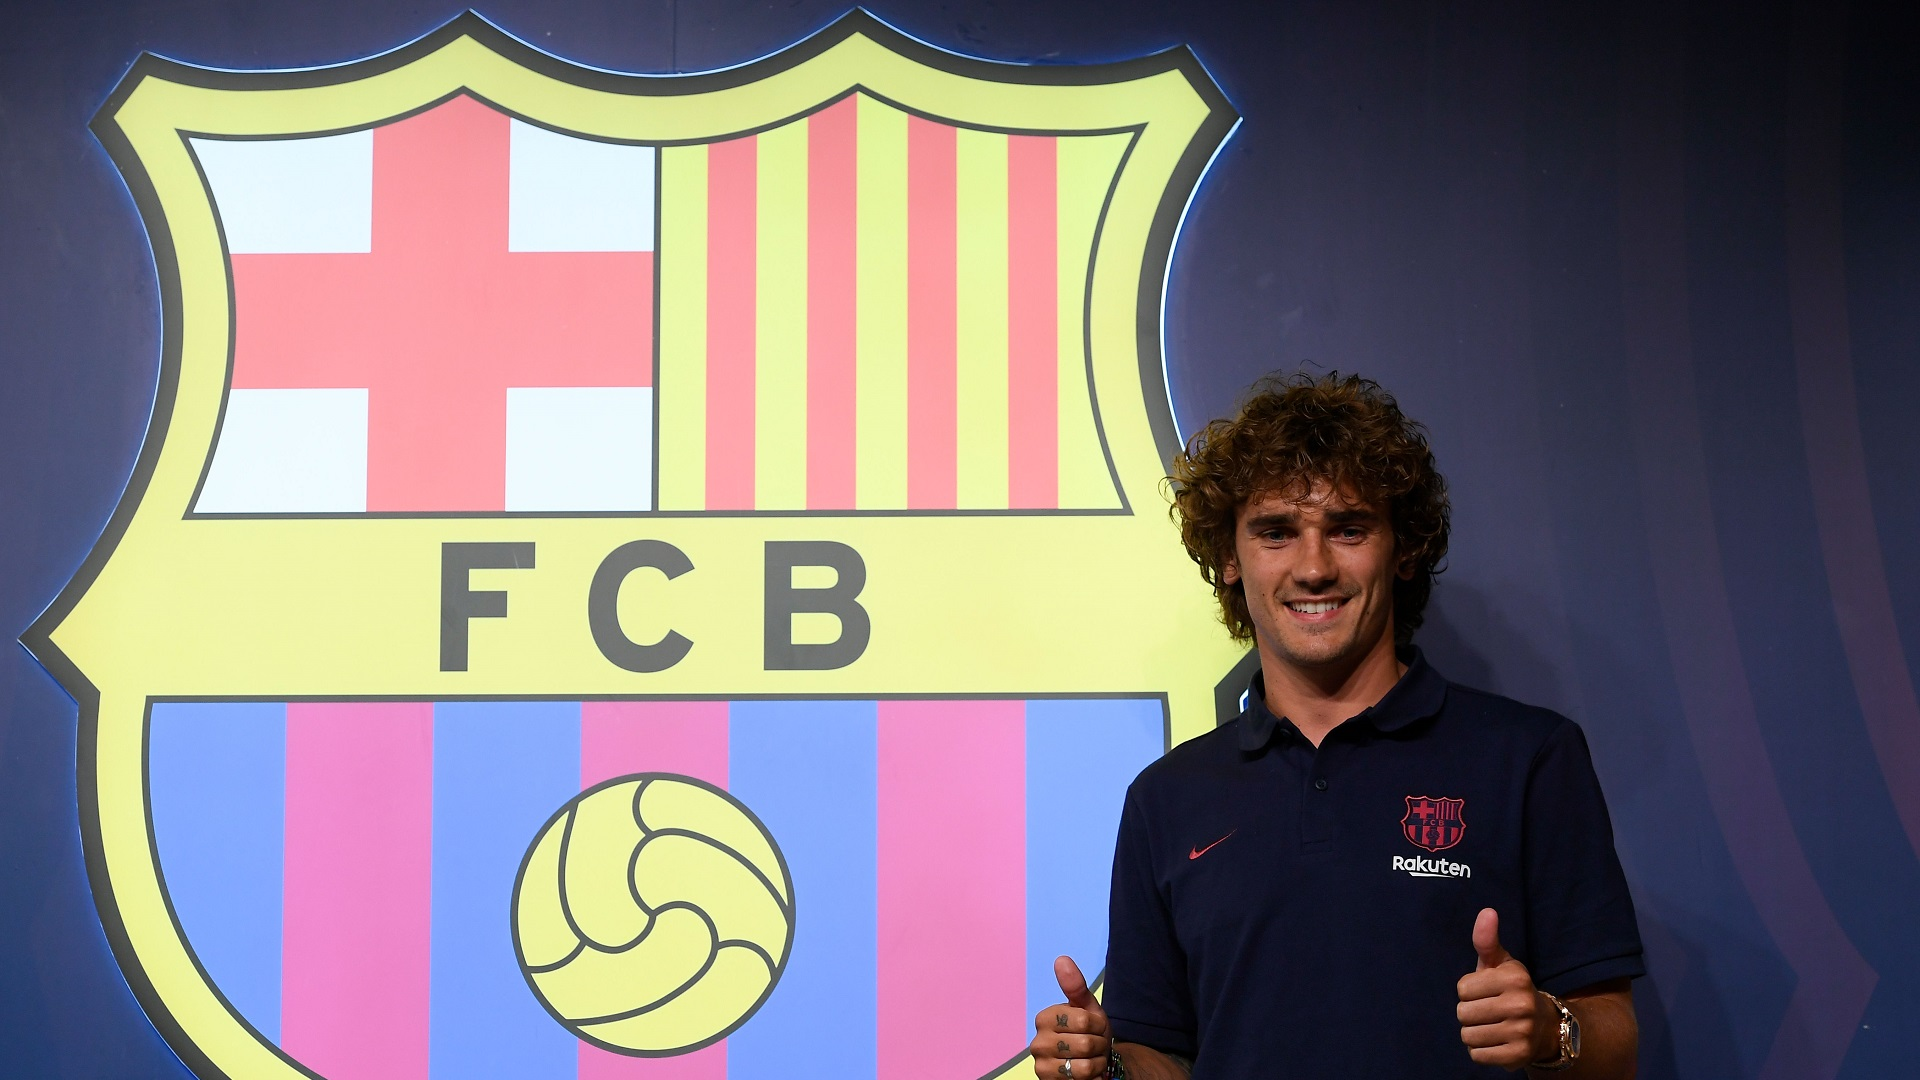 Griezmann handed No. 17 ahead of debut season with Barcelona